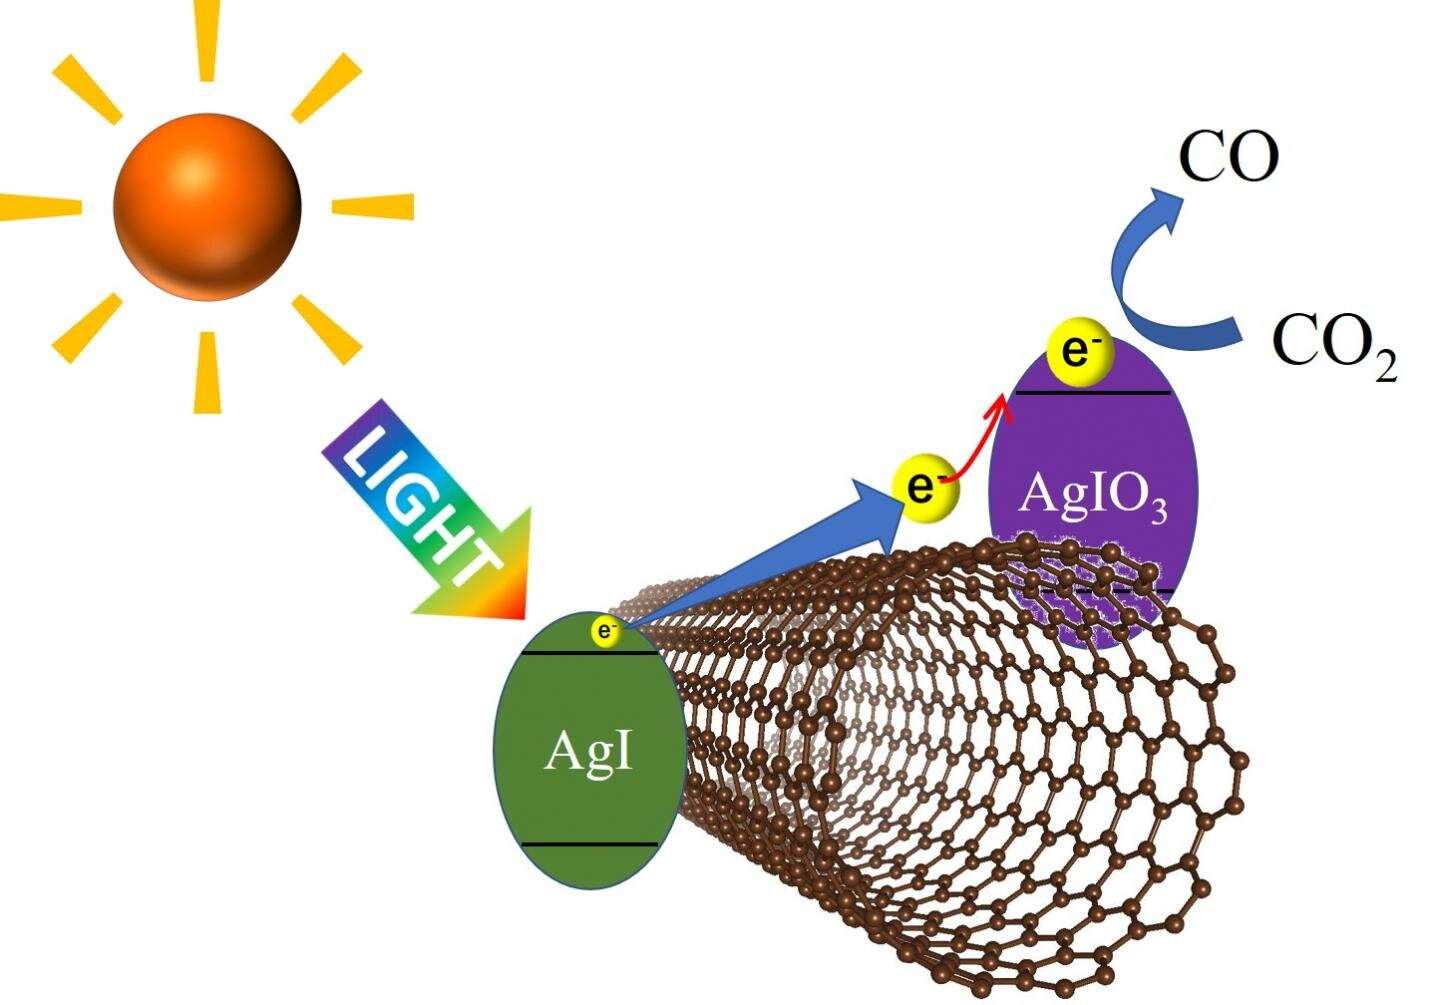 Using visible light to efficiently decompose carbon dioxide